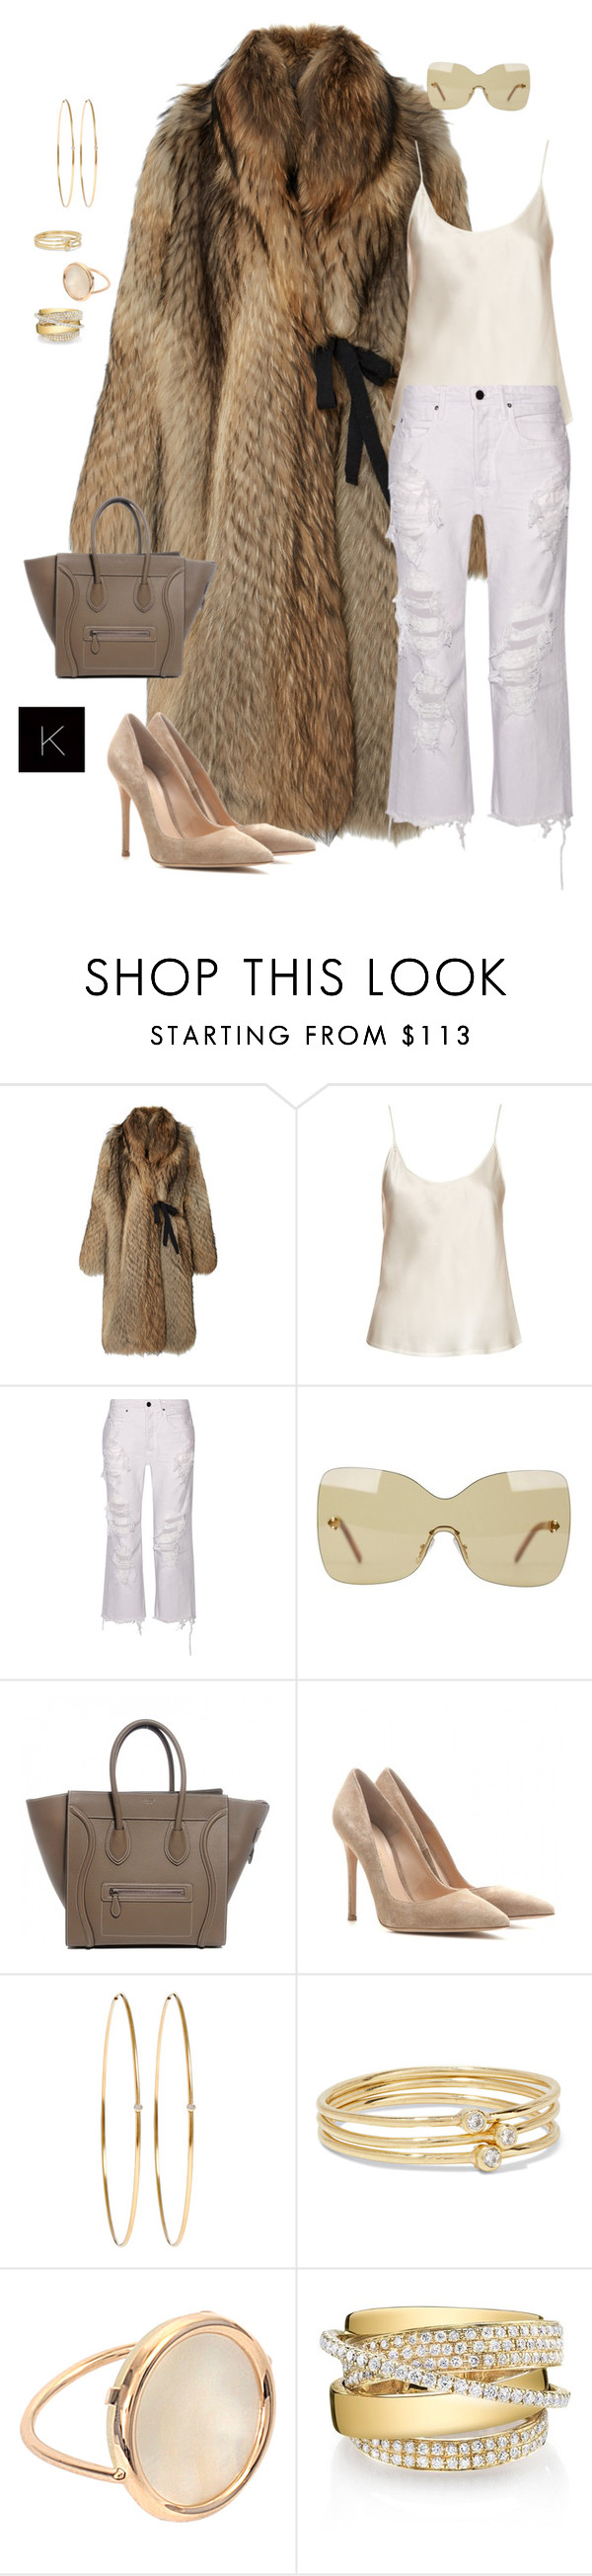 """Untitled #4123"" by kimberlythestylist ❤ liked on Polyvore featuring E L L E R Y, La Perla, Alexander Wang, Fendi, Gianvito Rossi, Jennifer Meyer Jewelry, Ginette NY and Shay"